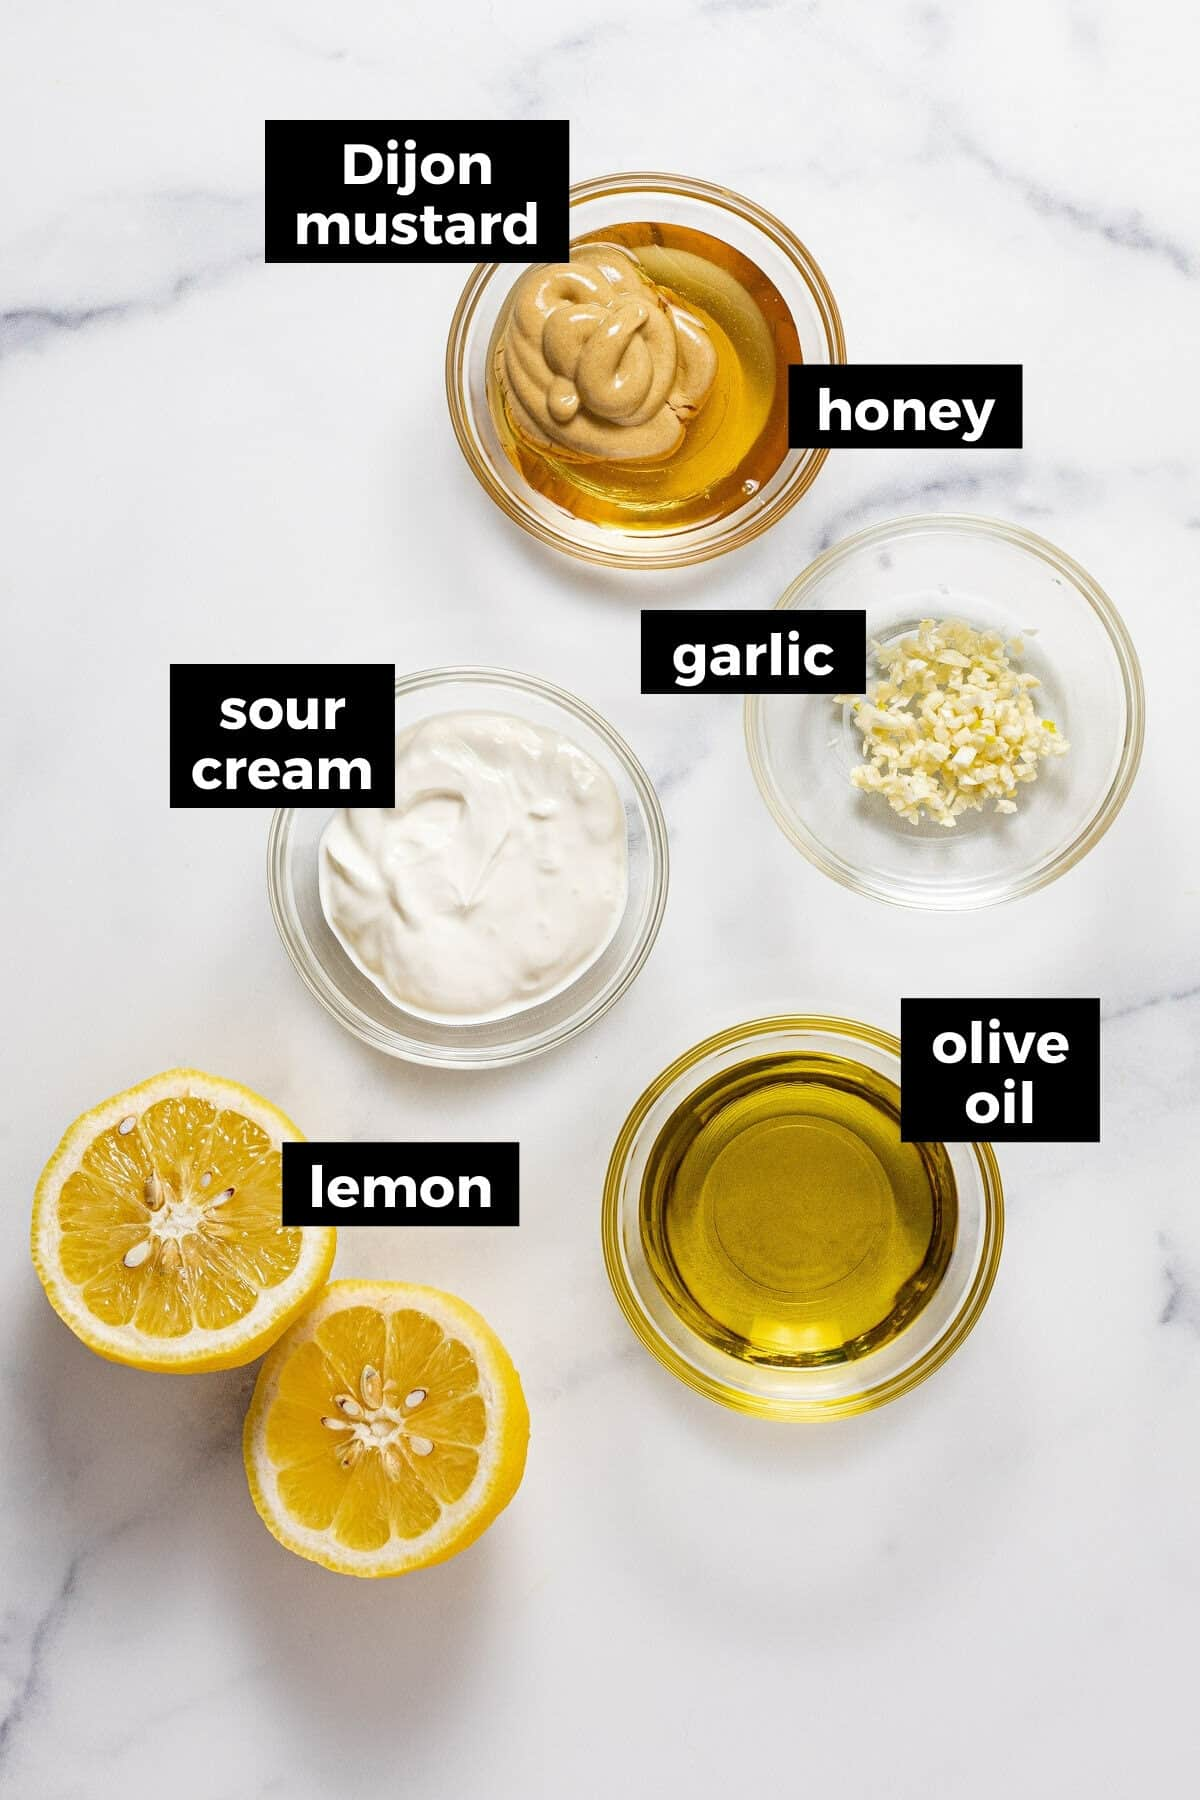 White marble counter top with ingredients to make honey mustard dressing